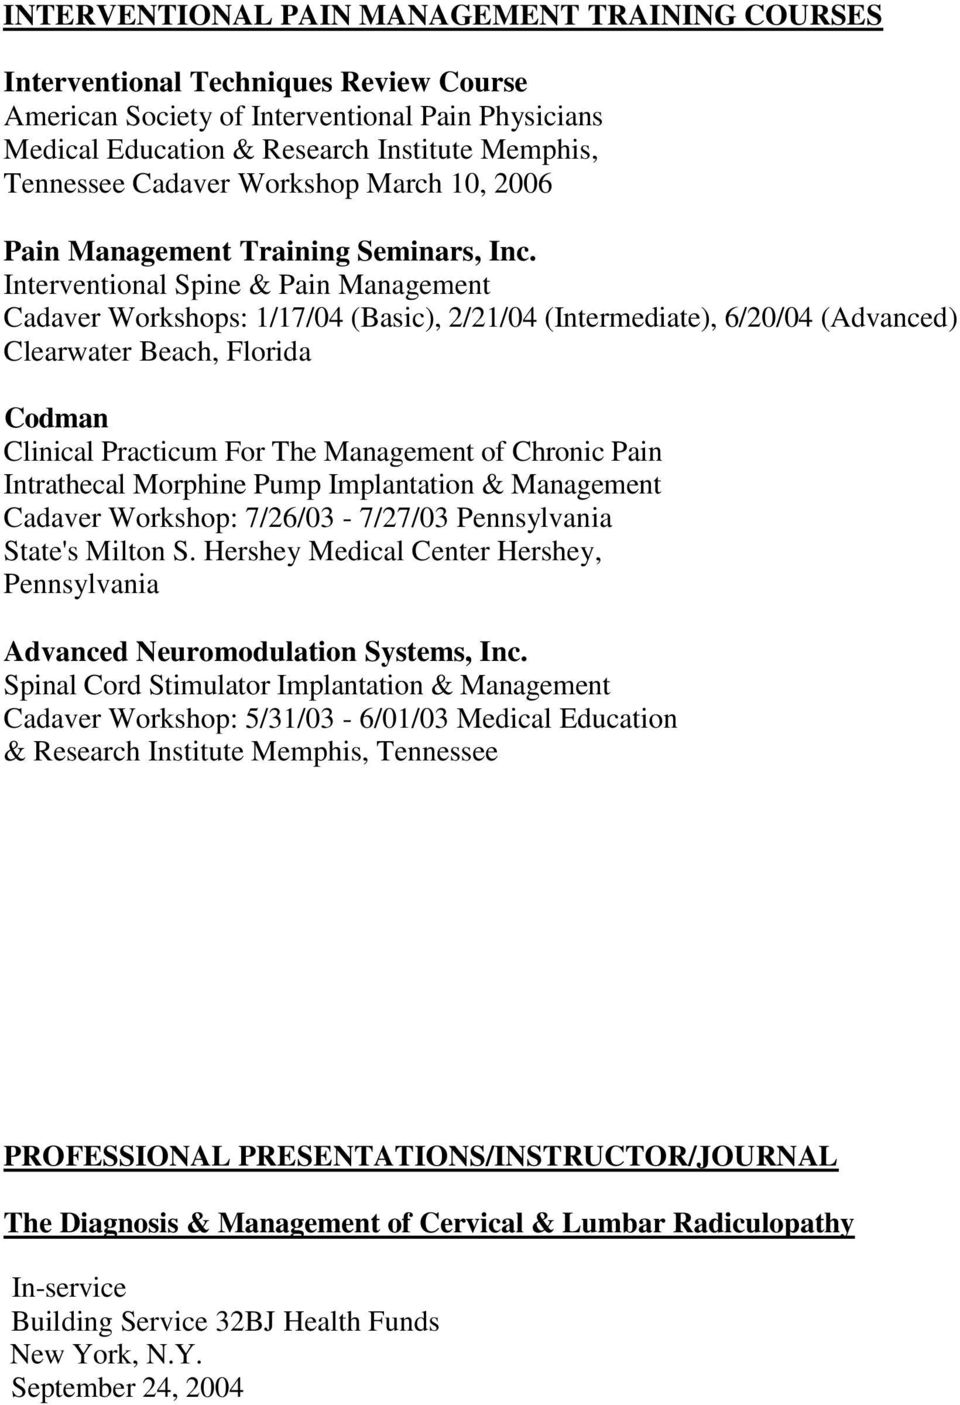 Interventional Spine & Pain Management Cadaver Workshops: 1/17/04 (Basic), 2/21/04 (Intermediate), 6/20/04 (Advanced) Clearwater Beach, Florida Codman Clinical Practicum For The Management of Chronic